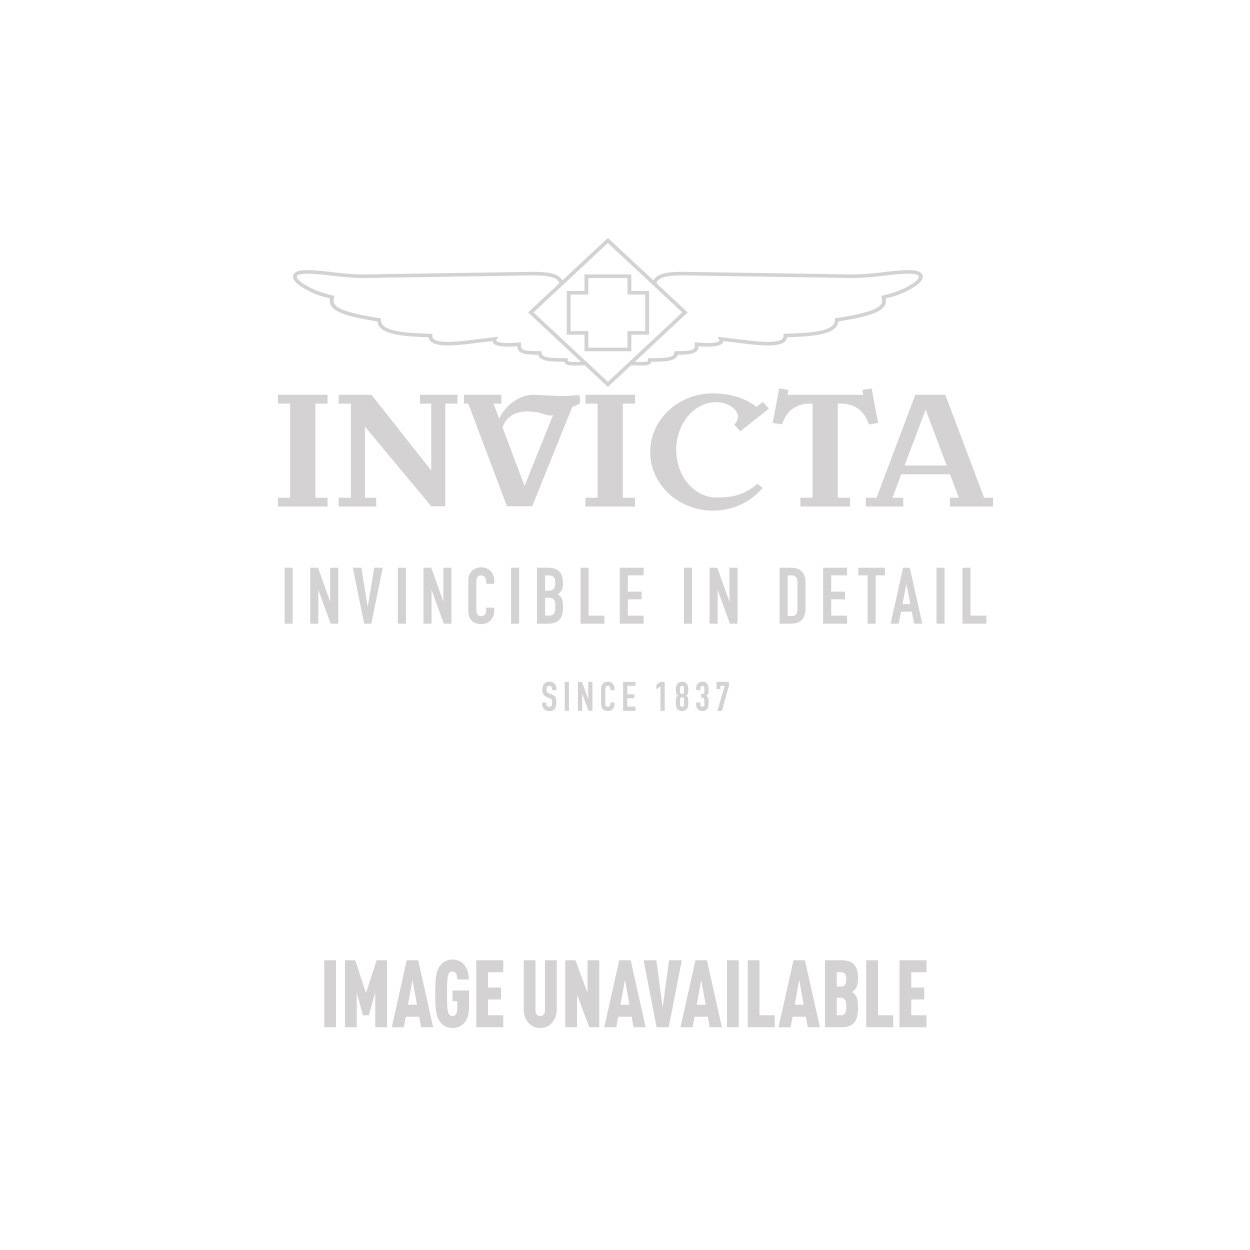 Invicta Corduba Mechanical Watch - Stainless Steel case with Blue tone Polyurethane band - Model 10658